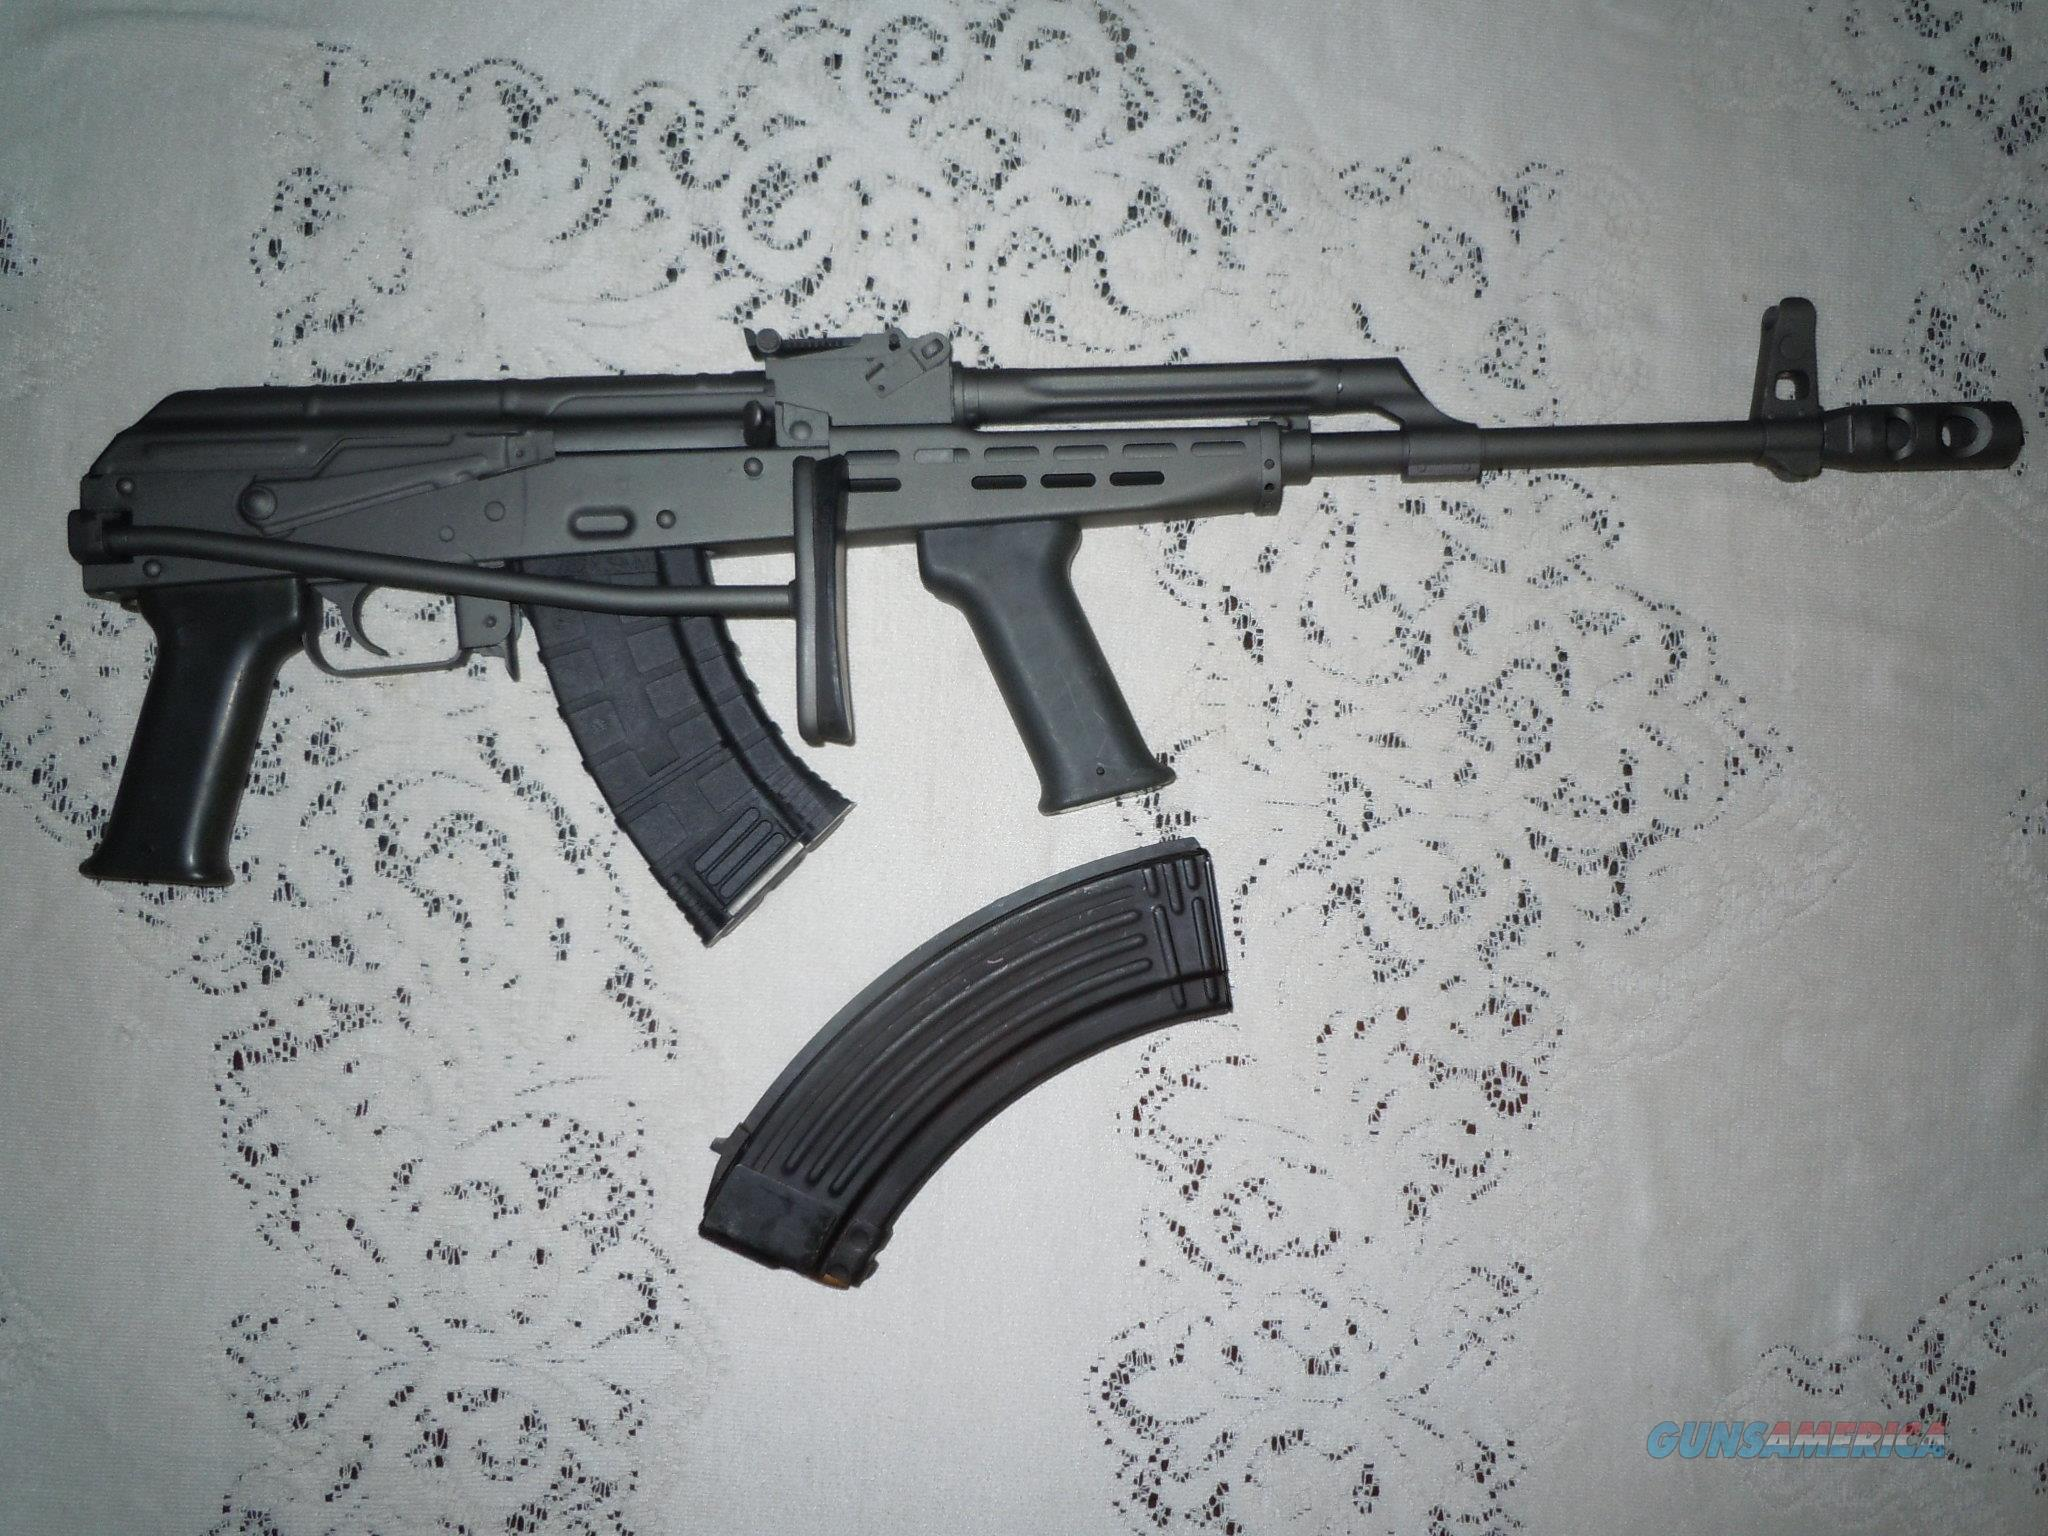 AMD-65 Hungarian AK-47 variant type 65 Semi-auto rifle 7.62X39 mm 6 high cap. mags  Guns > Rifles > AK-47 Rifles (and copies) > Folding Stock